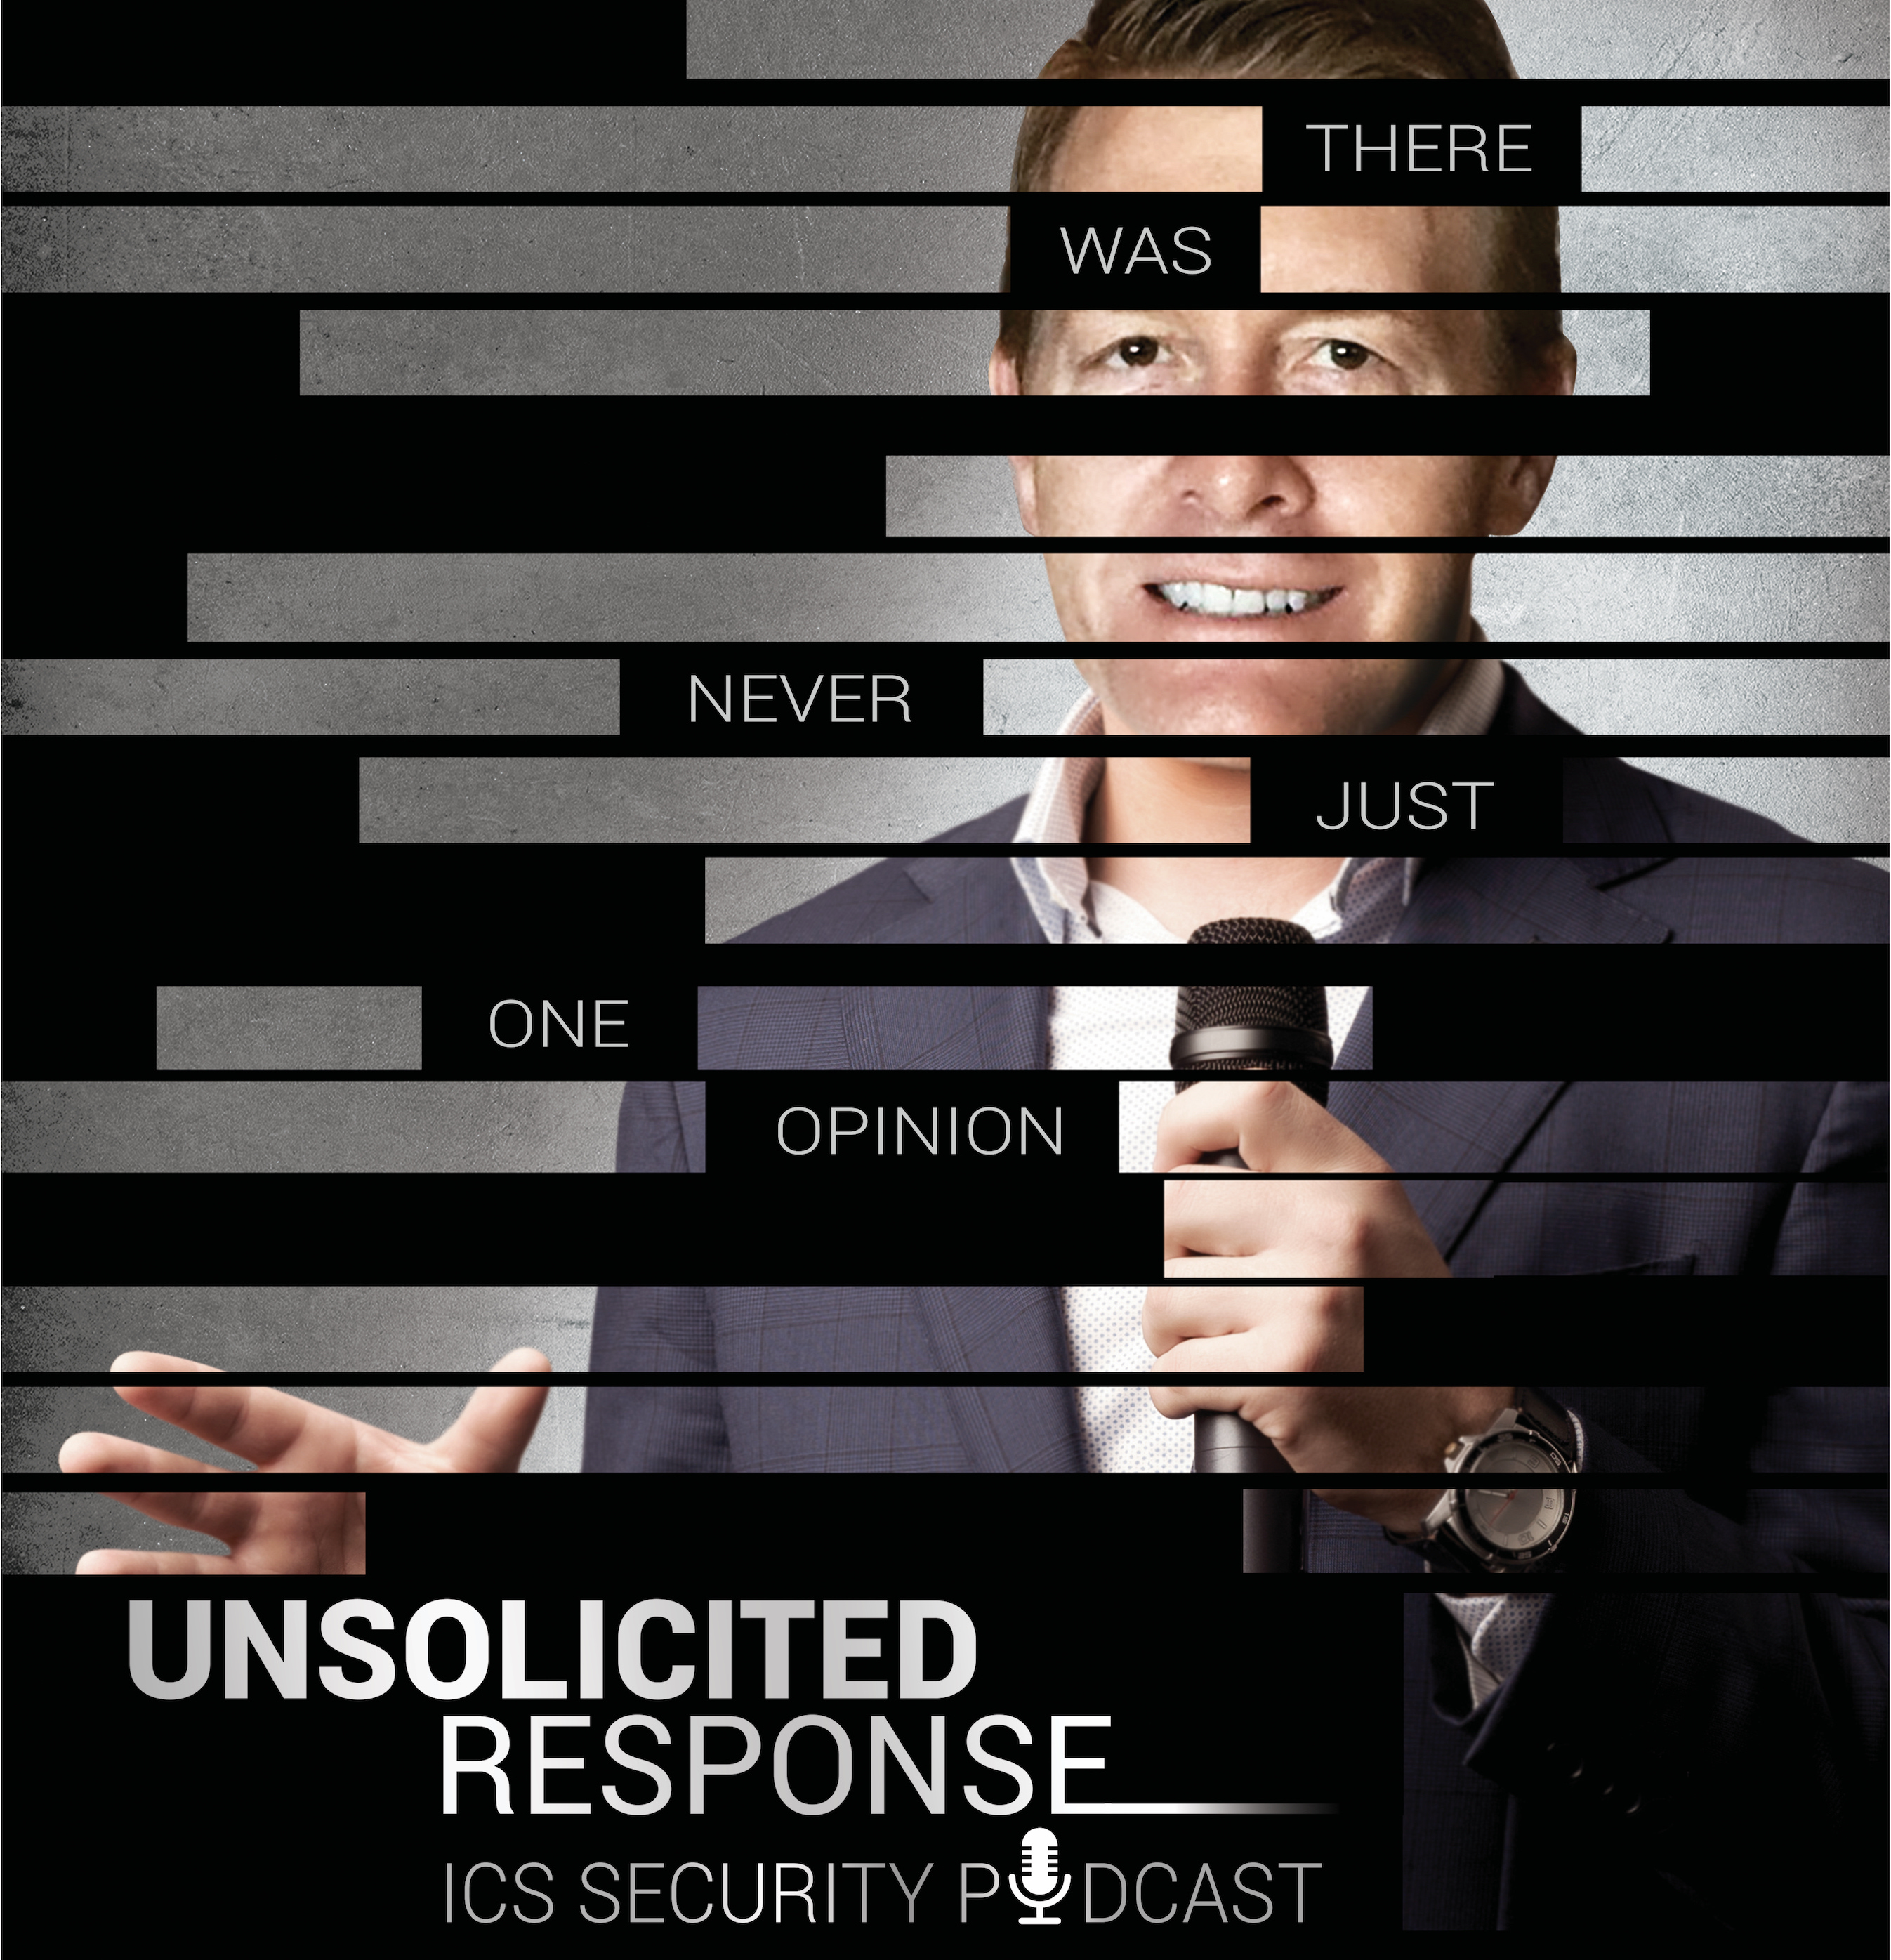 Unsolicited Response, with host Dale Peterson